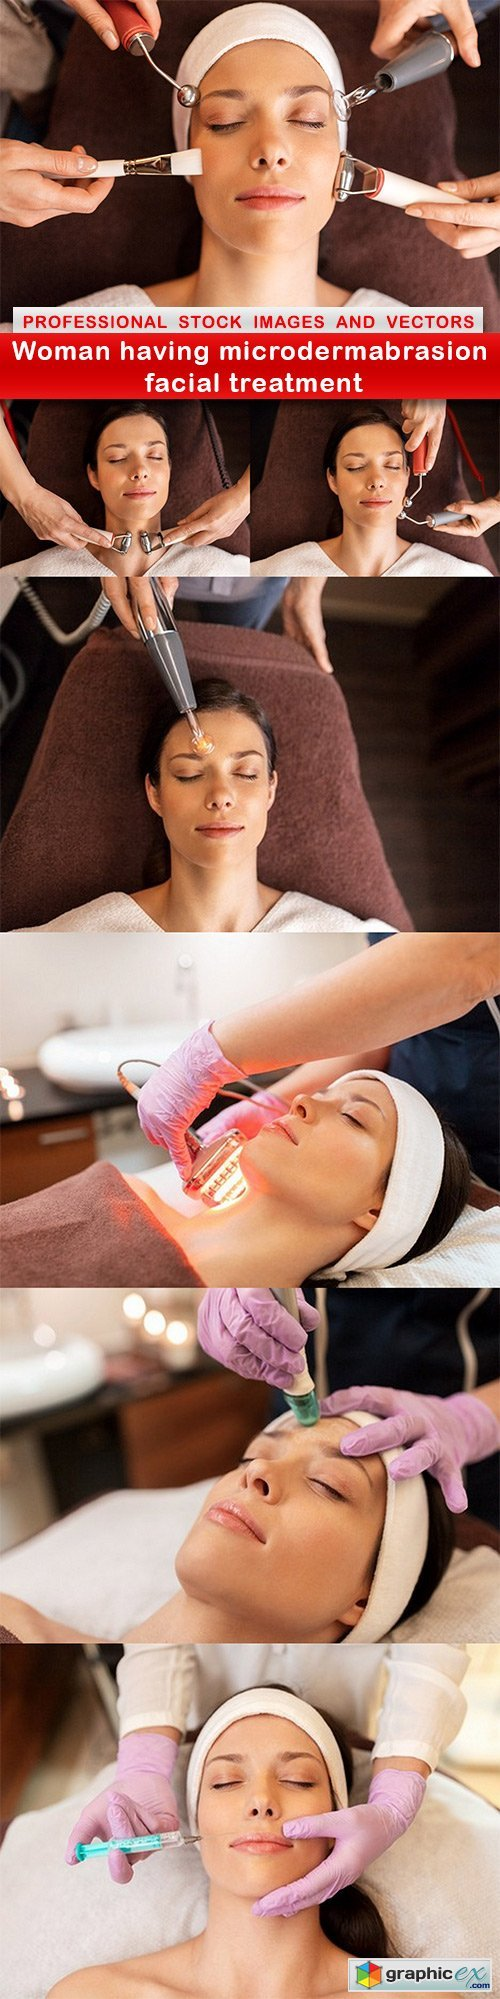 Woman having microdermabrasion facial treatment - 7 UHQ JPEG